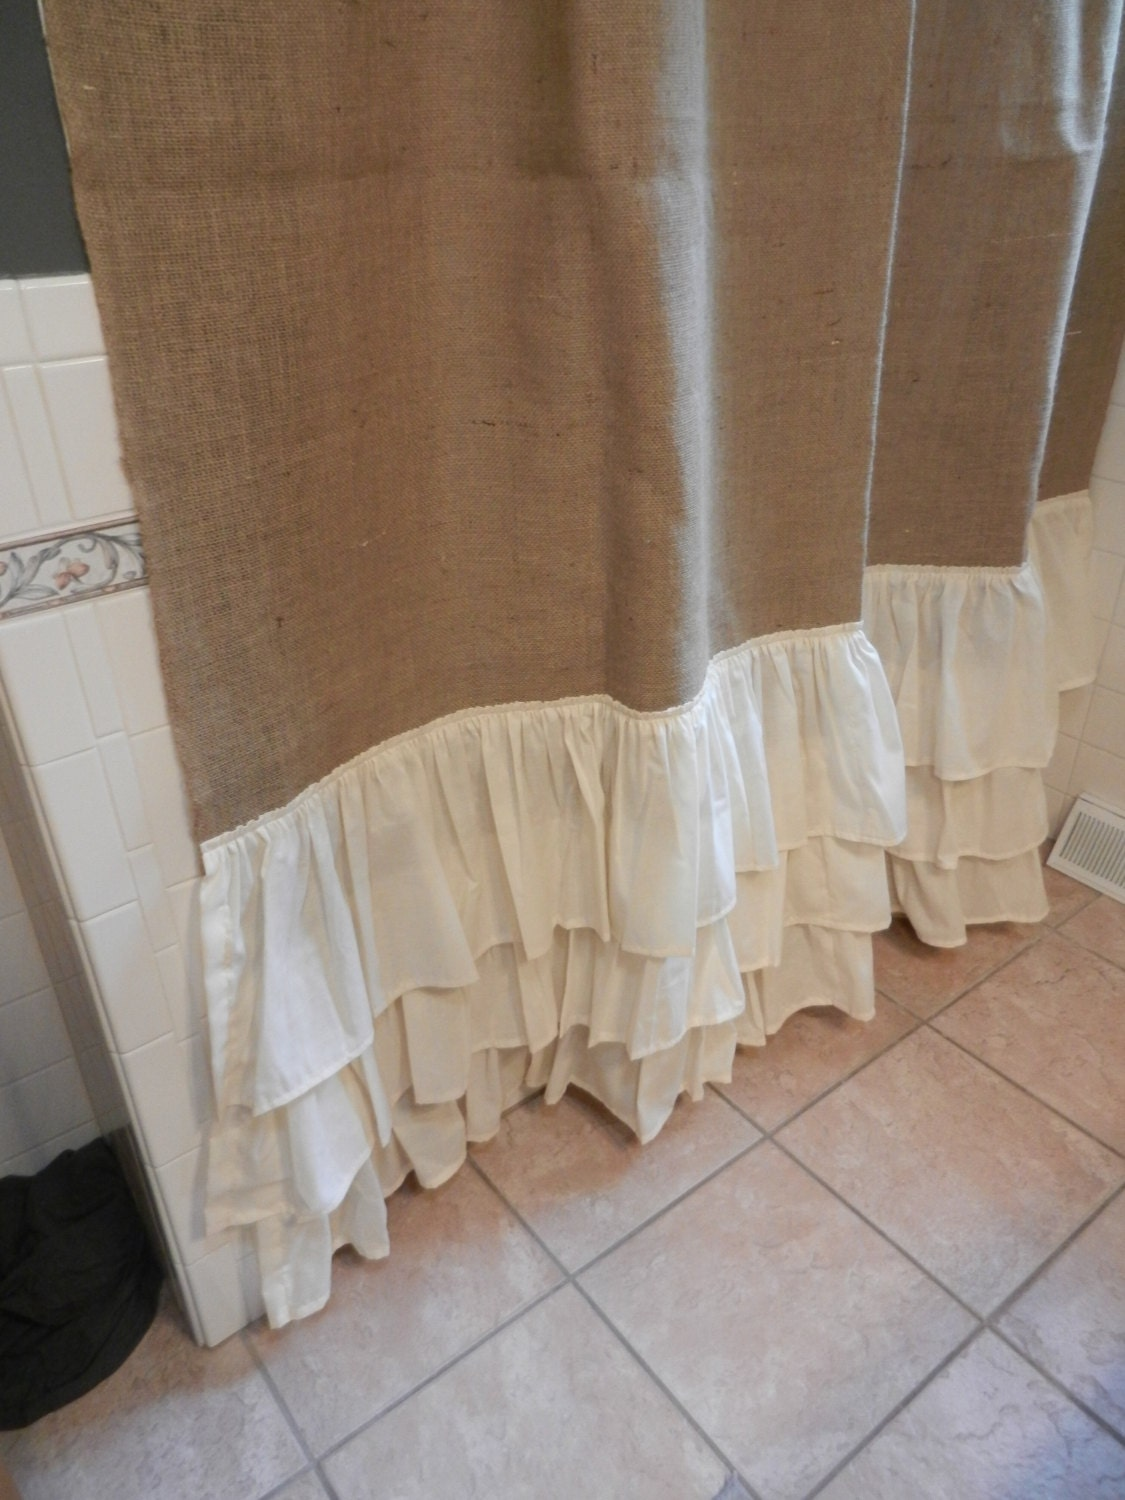 Burlap and Muslin Ruffled Shower Curtain. by CraftyAmour on Etsy